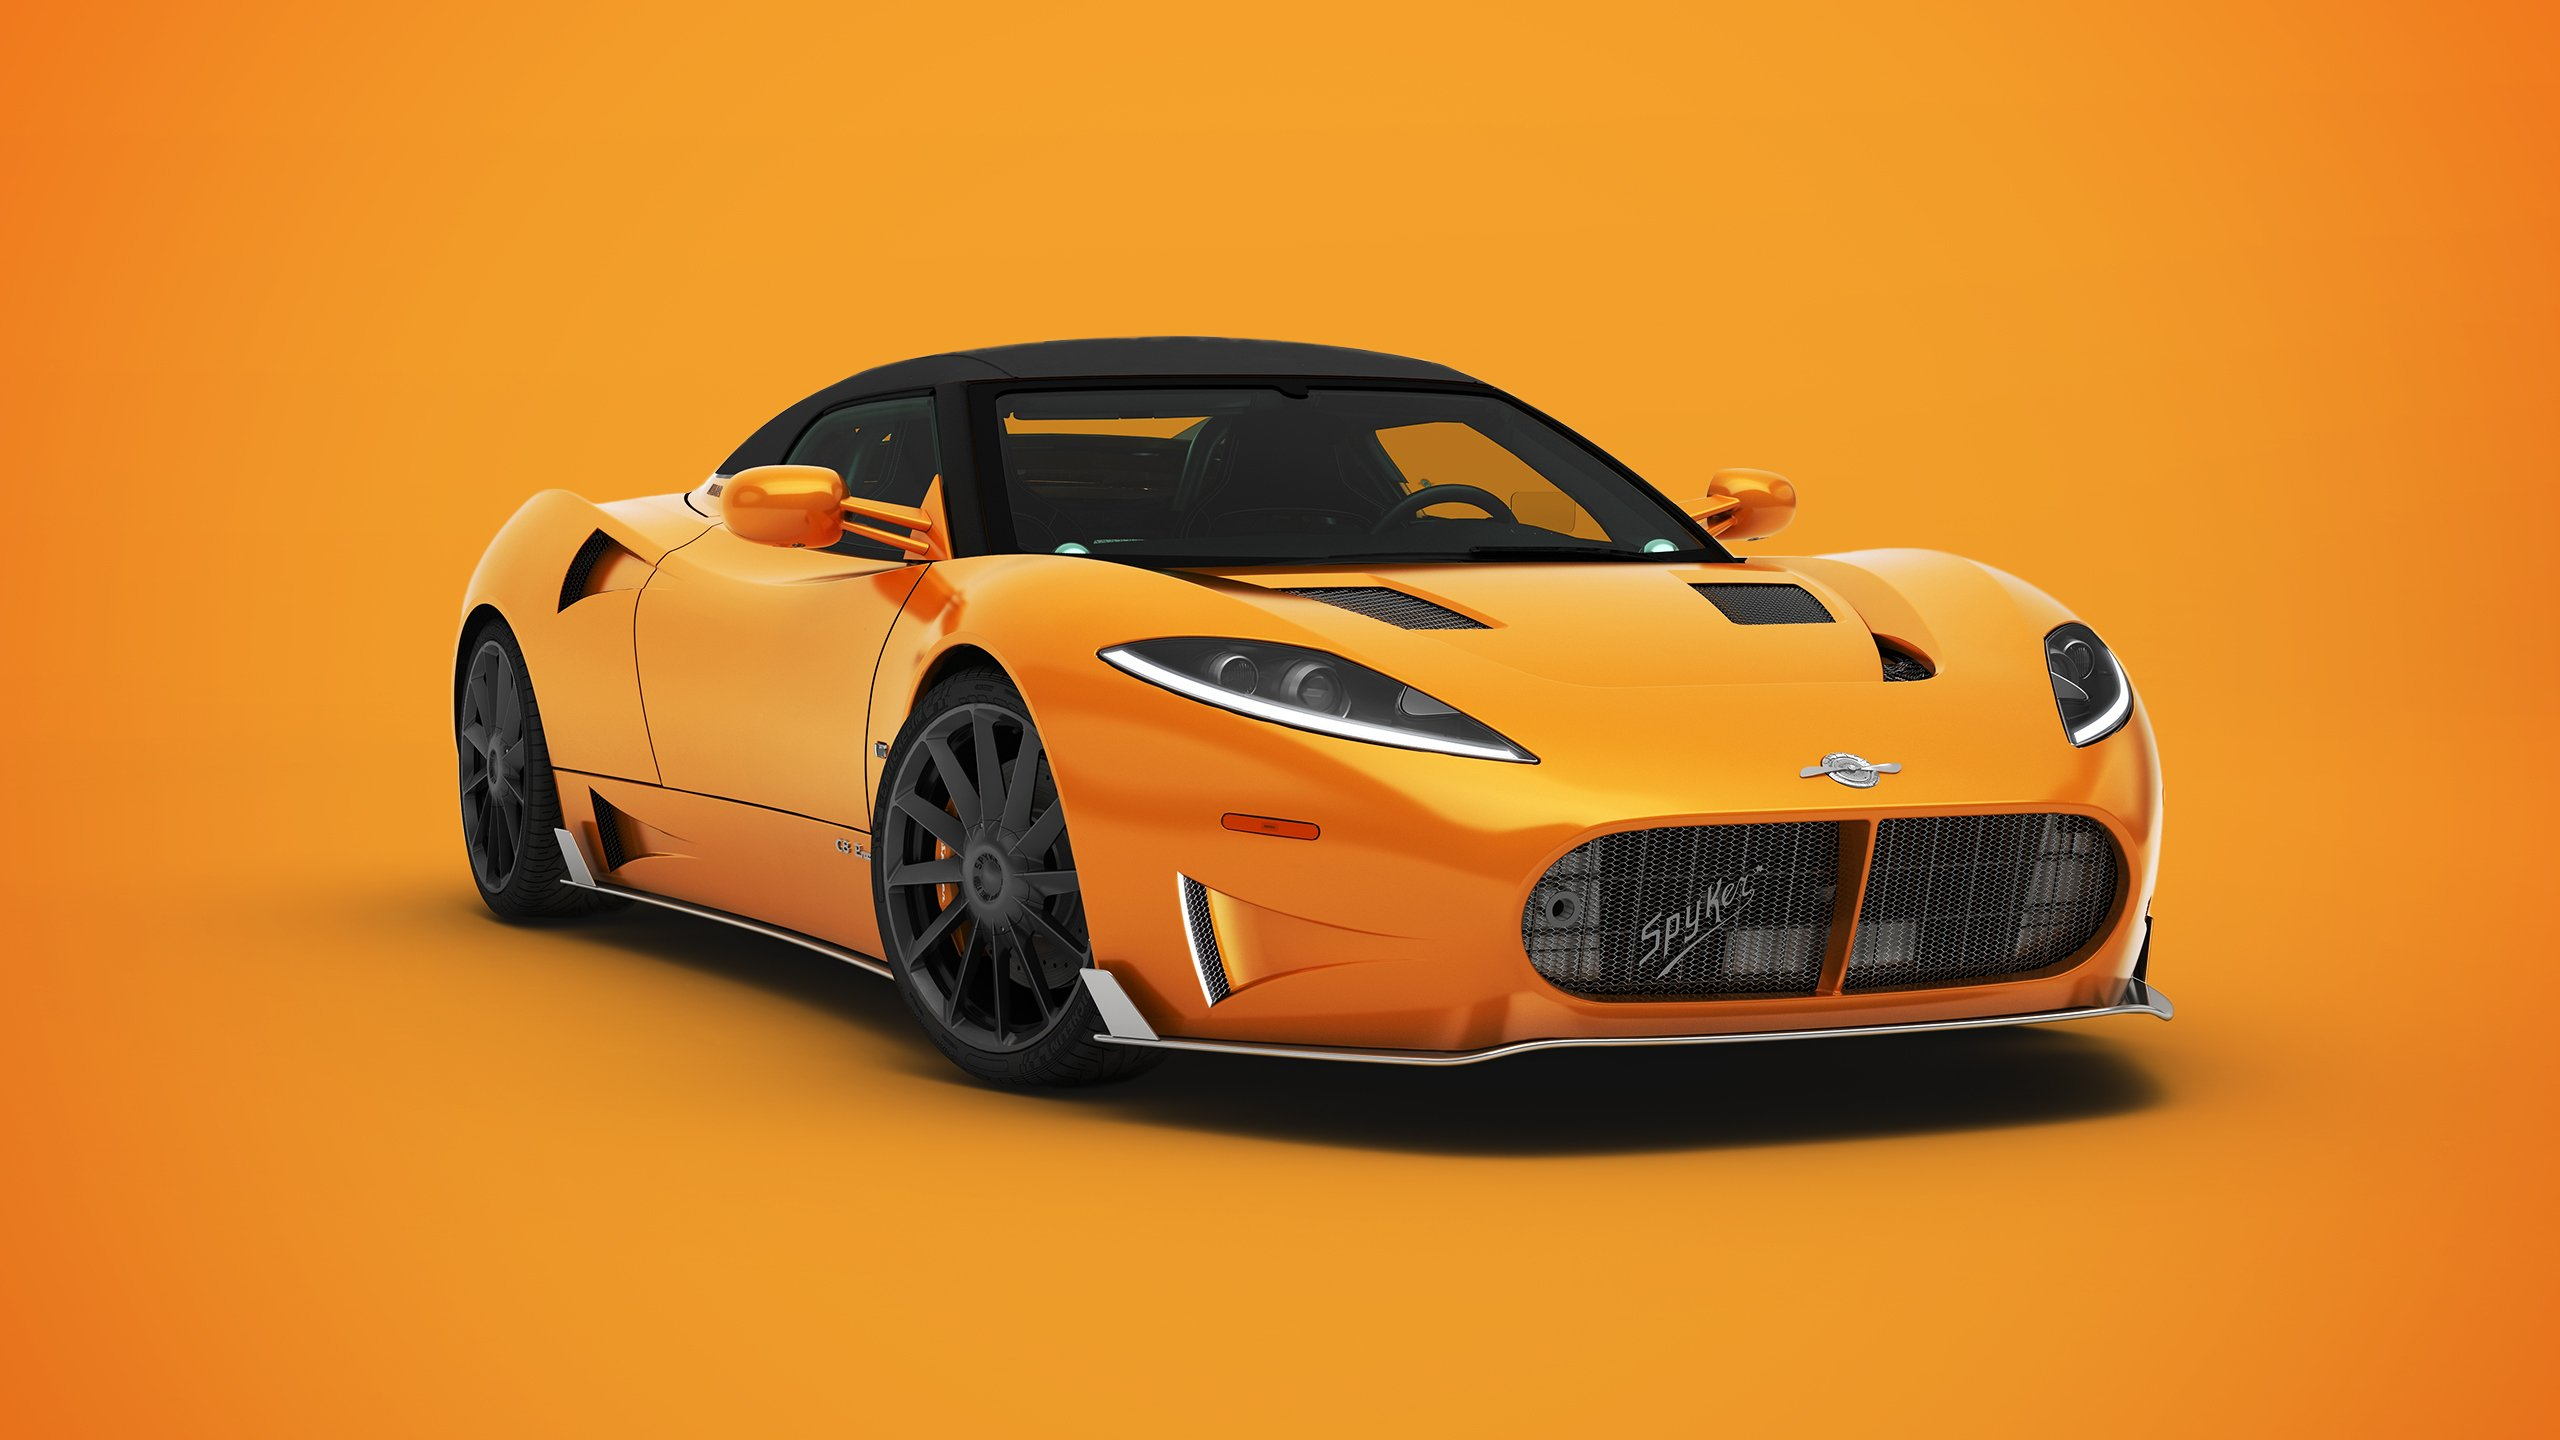 amsterdam-webdesign-innovative-digital-spyker